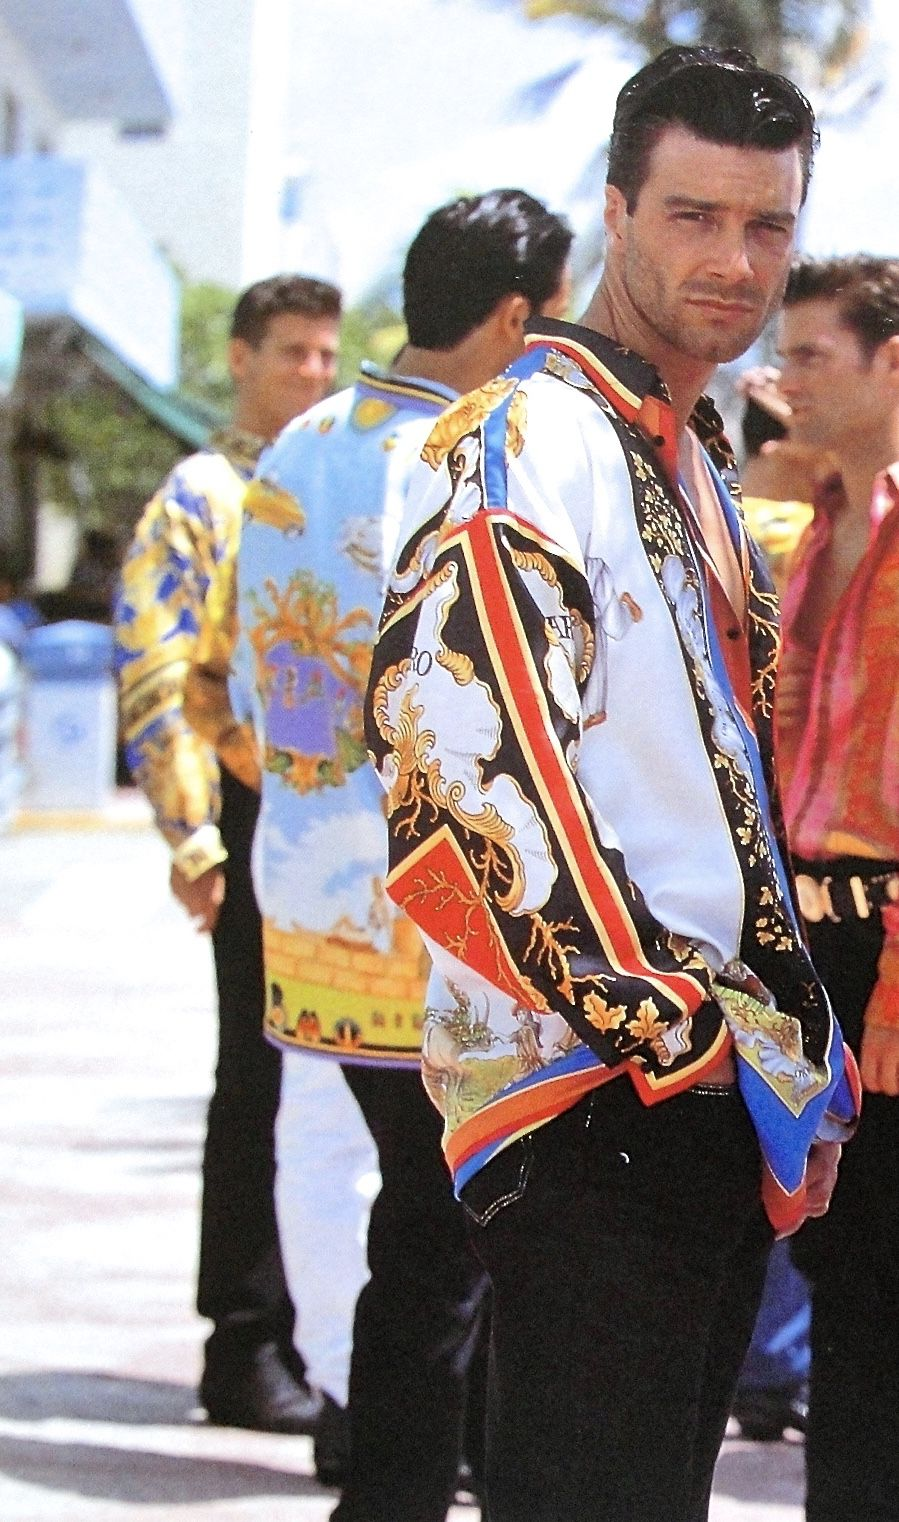 d323966ff8a GIANNI VERSACE SIGNATURE Spring Summer 1990 photographed by DOUG ORDWAY